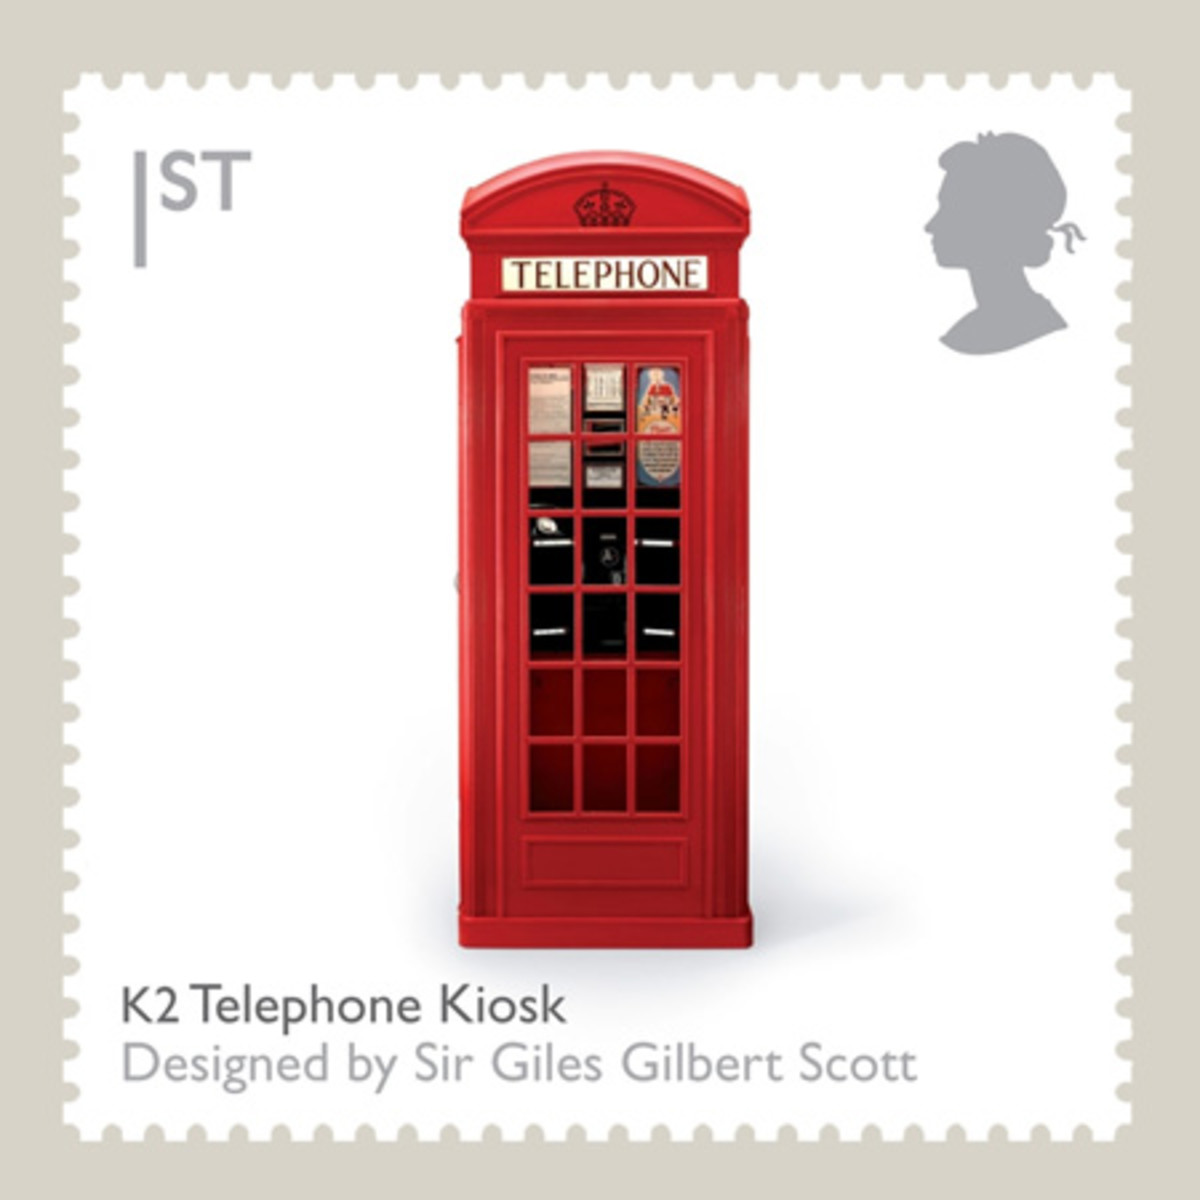 Iconic British Phone Box on a British Postage Stamp